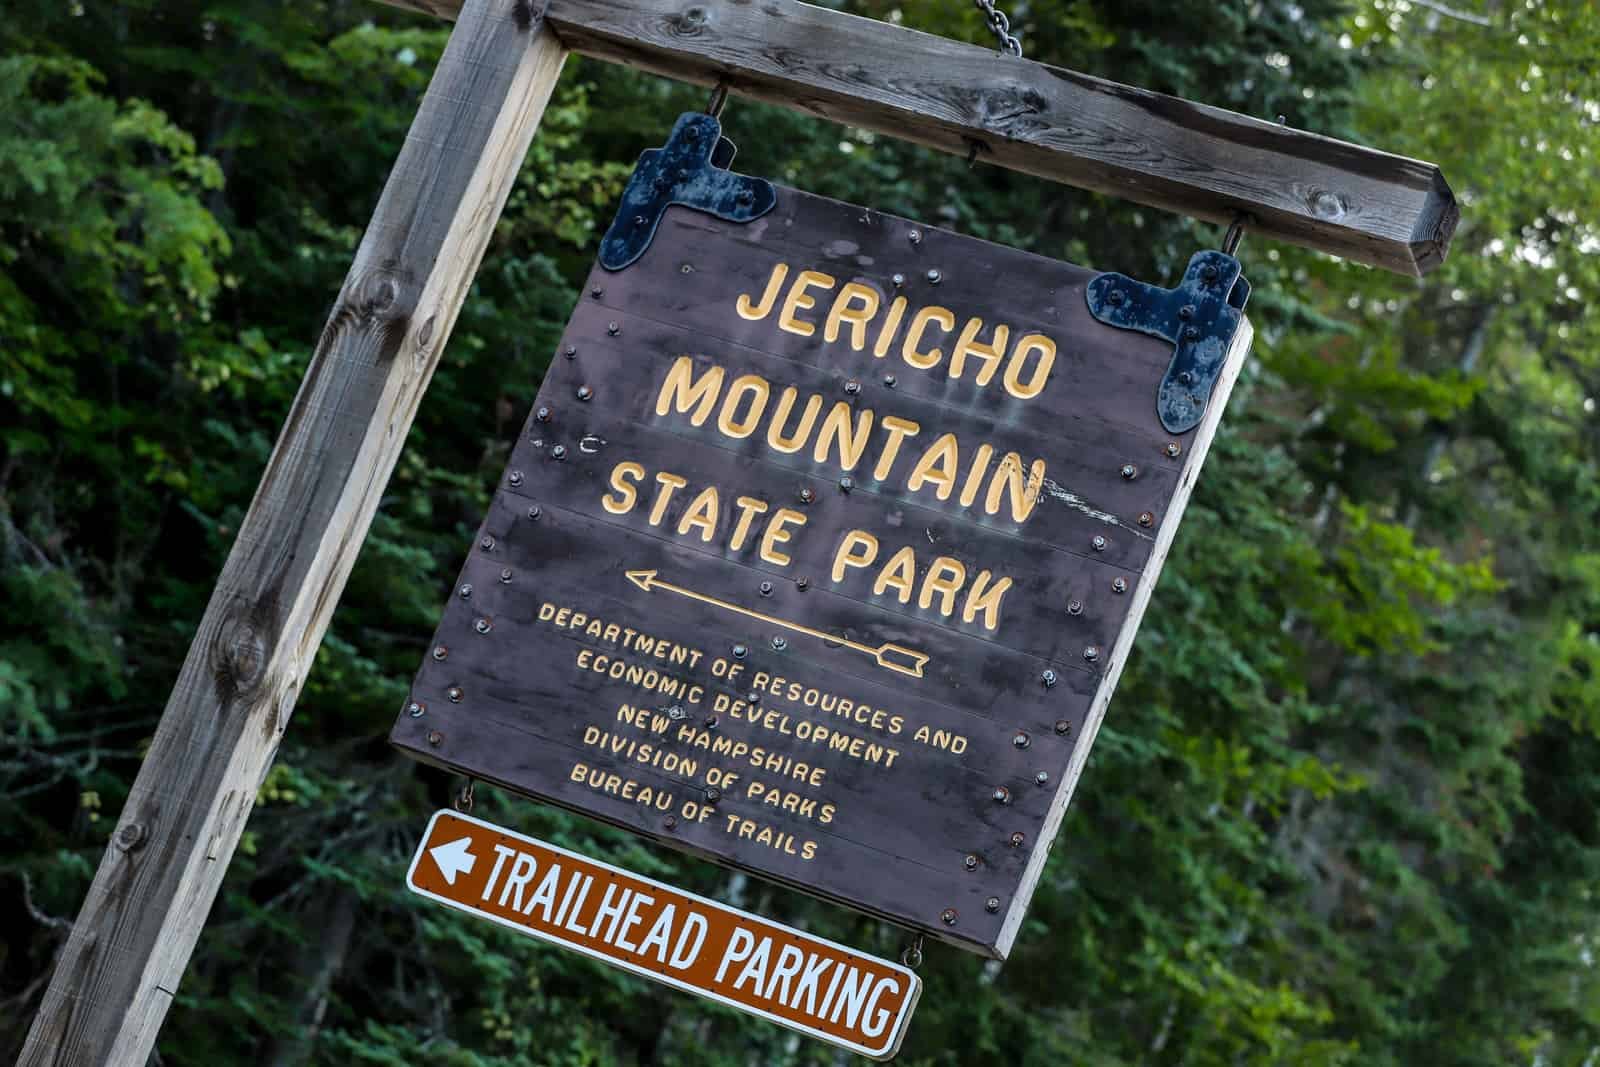 The Jericho ATV Festival takes place in Jericho Mountain State Park in Berlin, NH